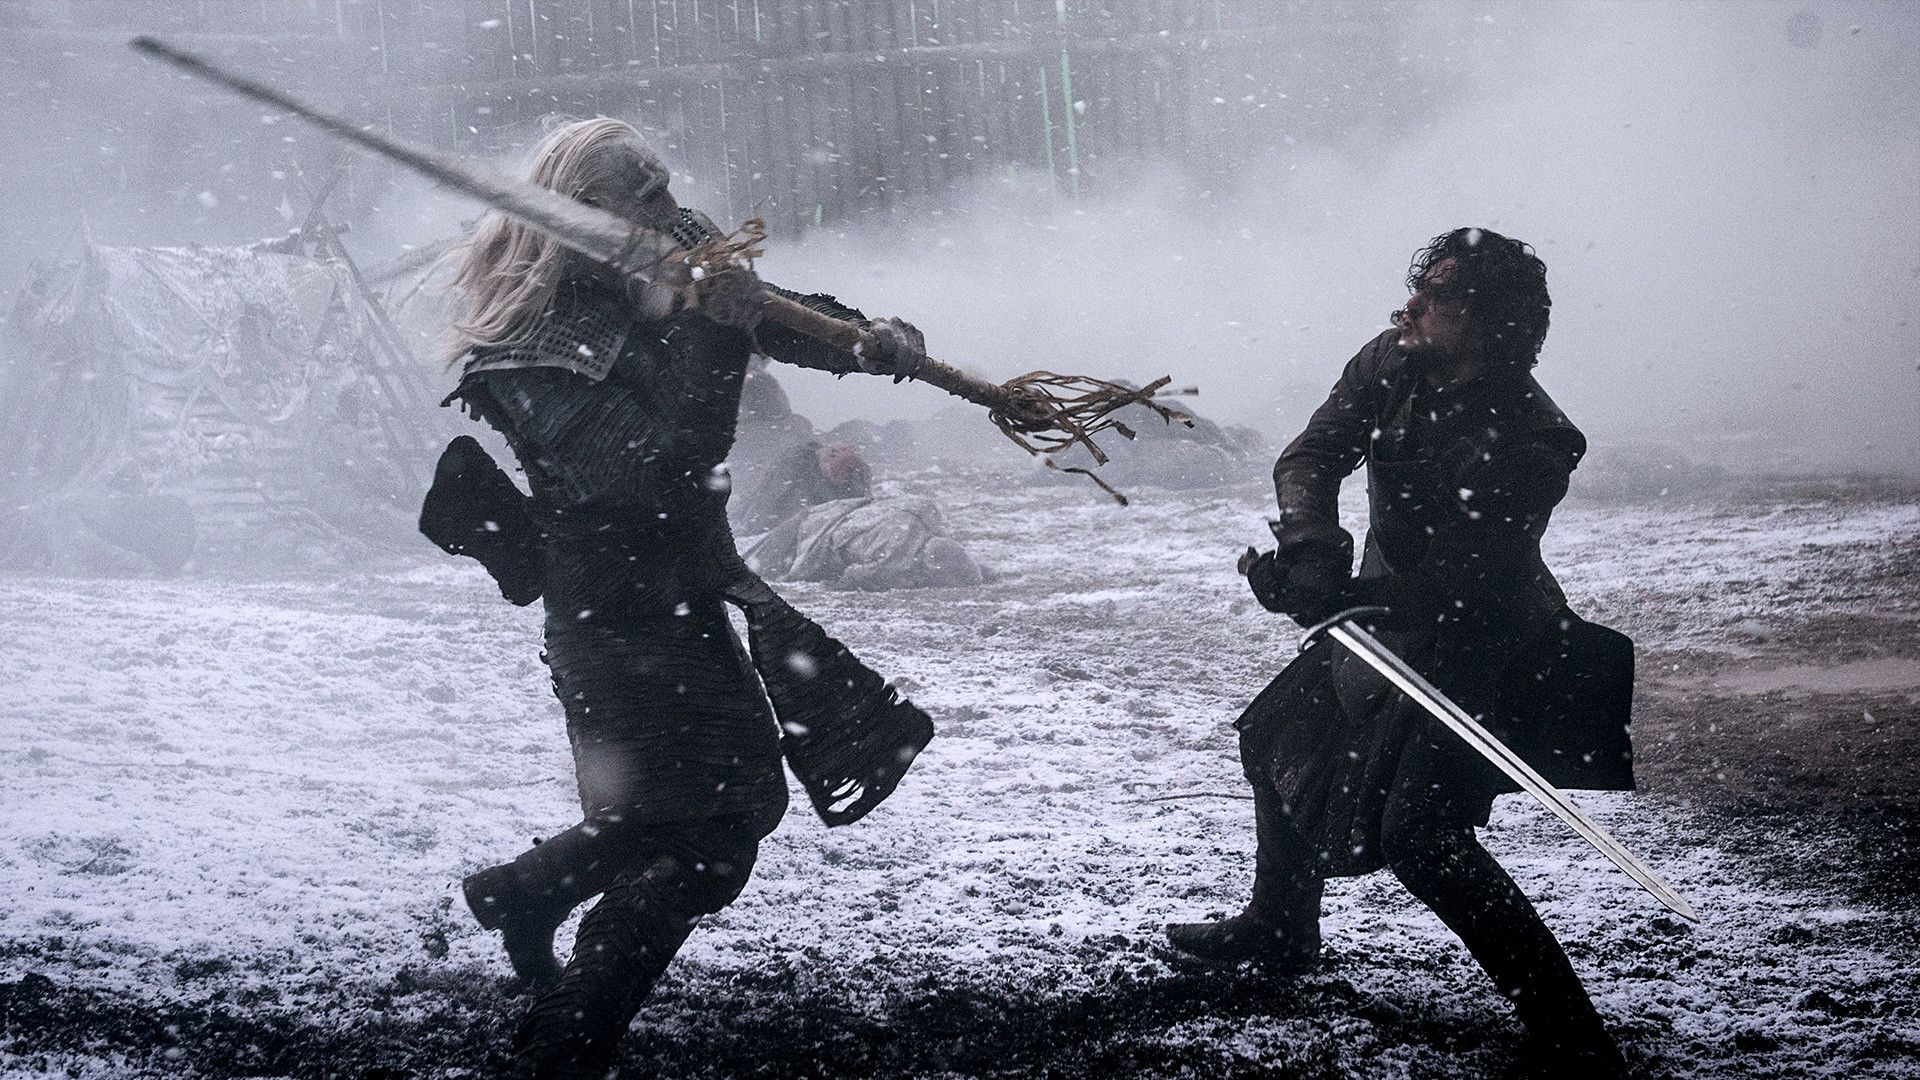 Game Of Thrones Battle Wallpapers Top Free Game Of Thrones